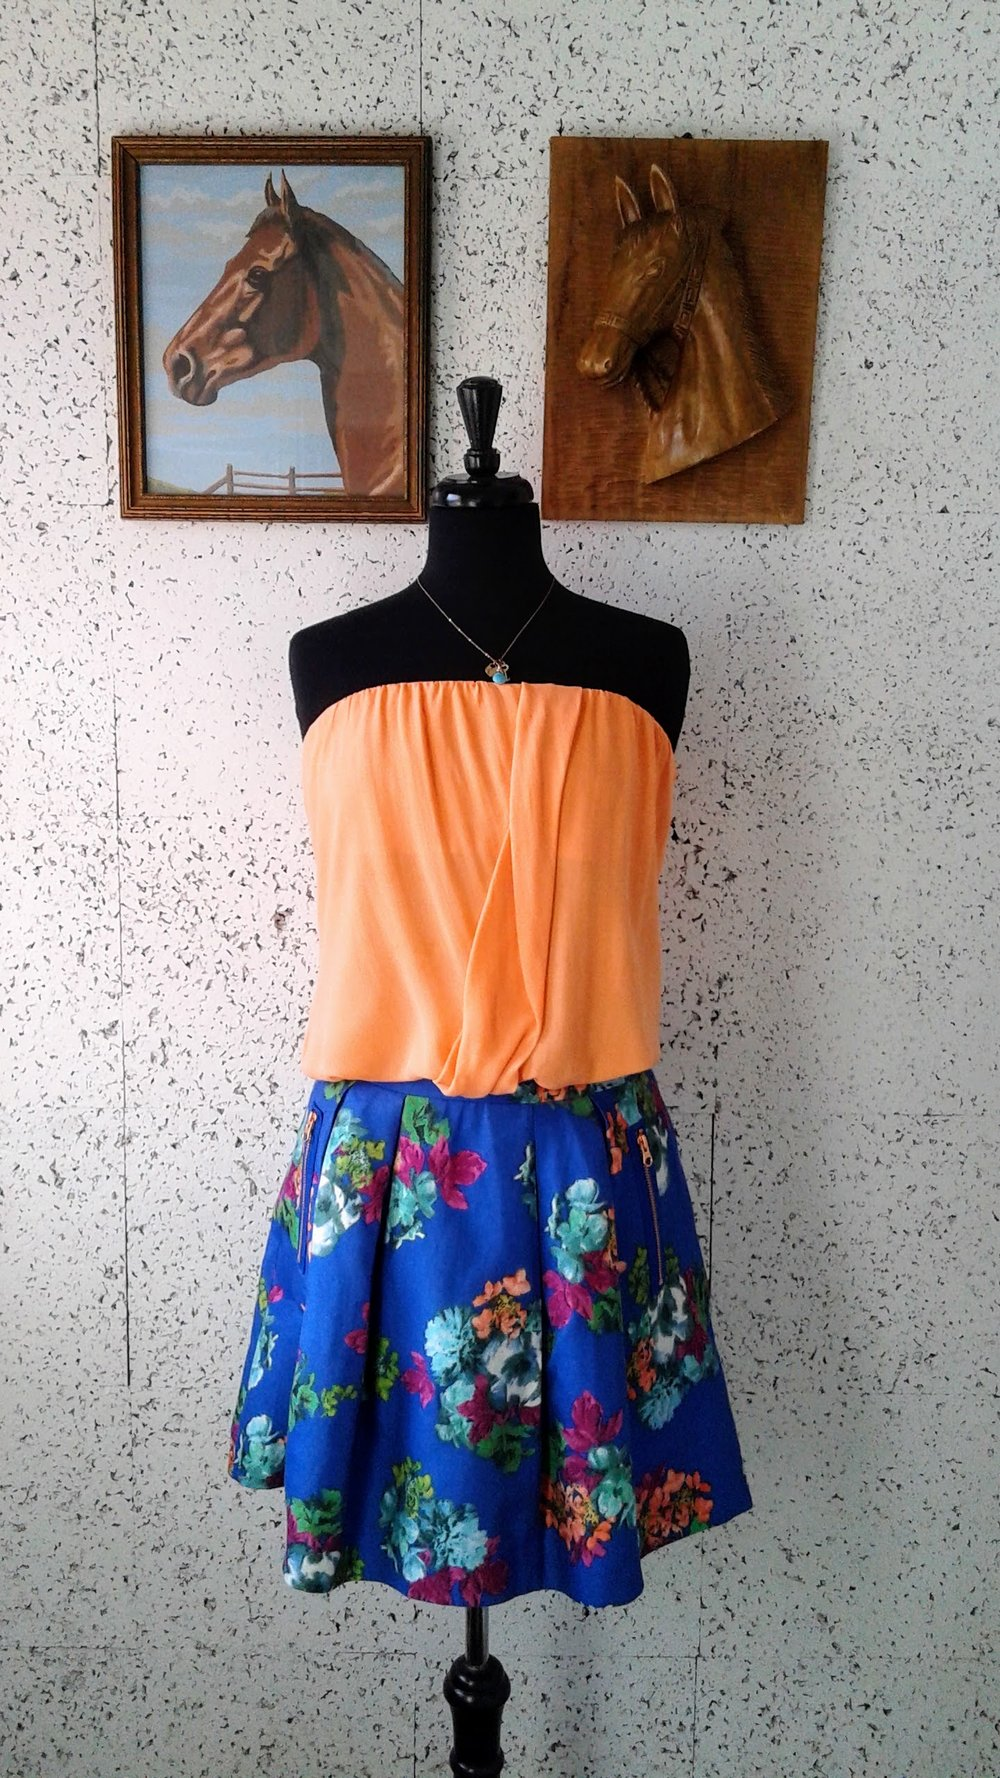 Alice and Olivia  top; Size M, $26. Maeve skirt; Size 4, $28. Necklace, $10